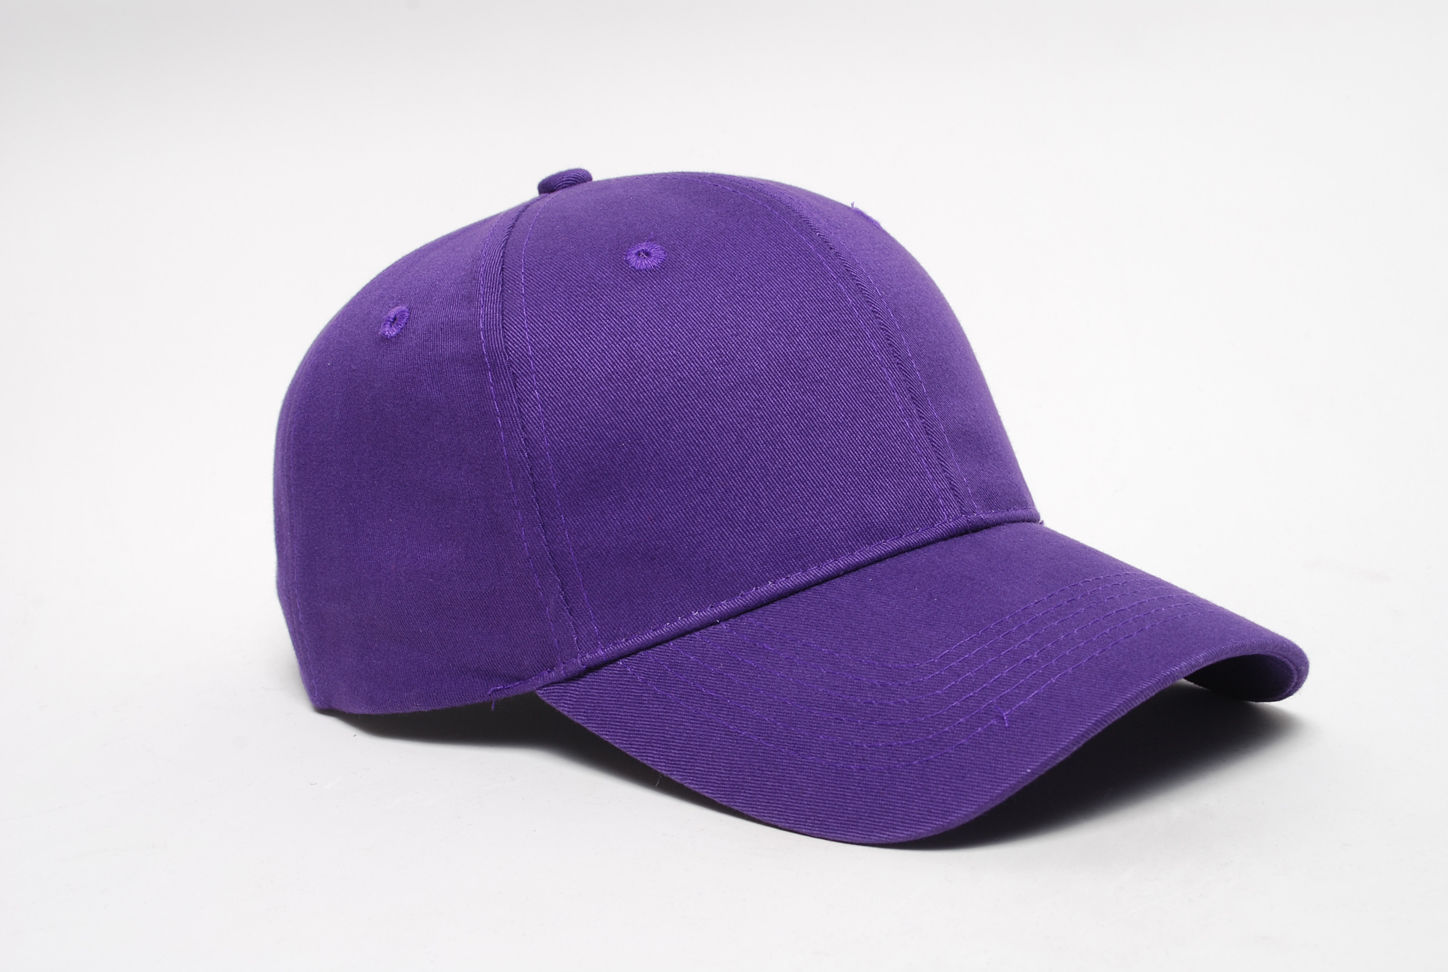 Brushed Cotton Twill Hook-And-Loop Adjustable Cap - PURPLE